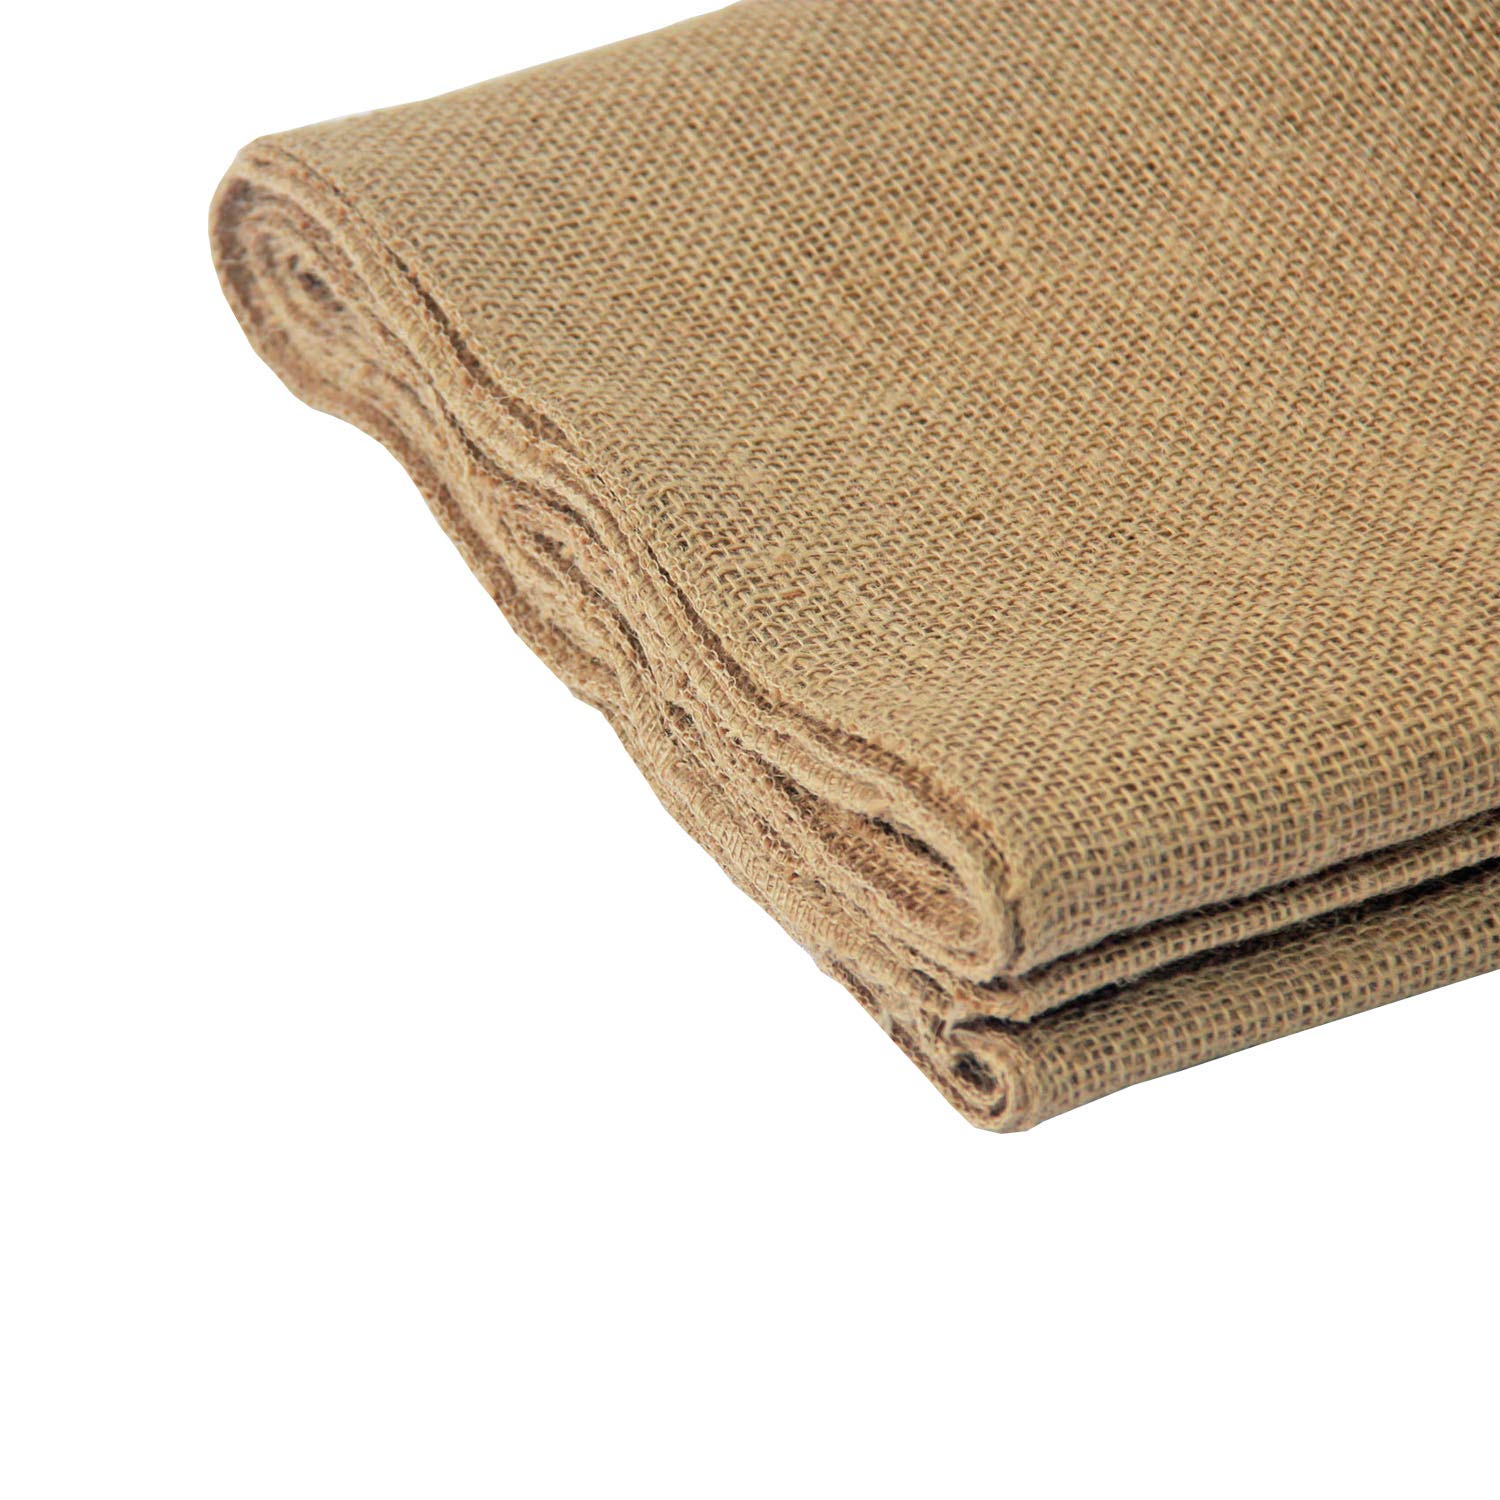 Natural 12 x 10 Yards Hessian Tablue Runner with Finised Edges Banquet Wedding Party Event Decoration and Crafts 12 x 10 Yards,1 Jute Burlap Table Runner Roll